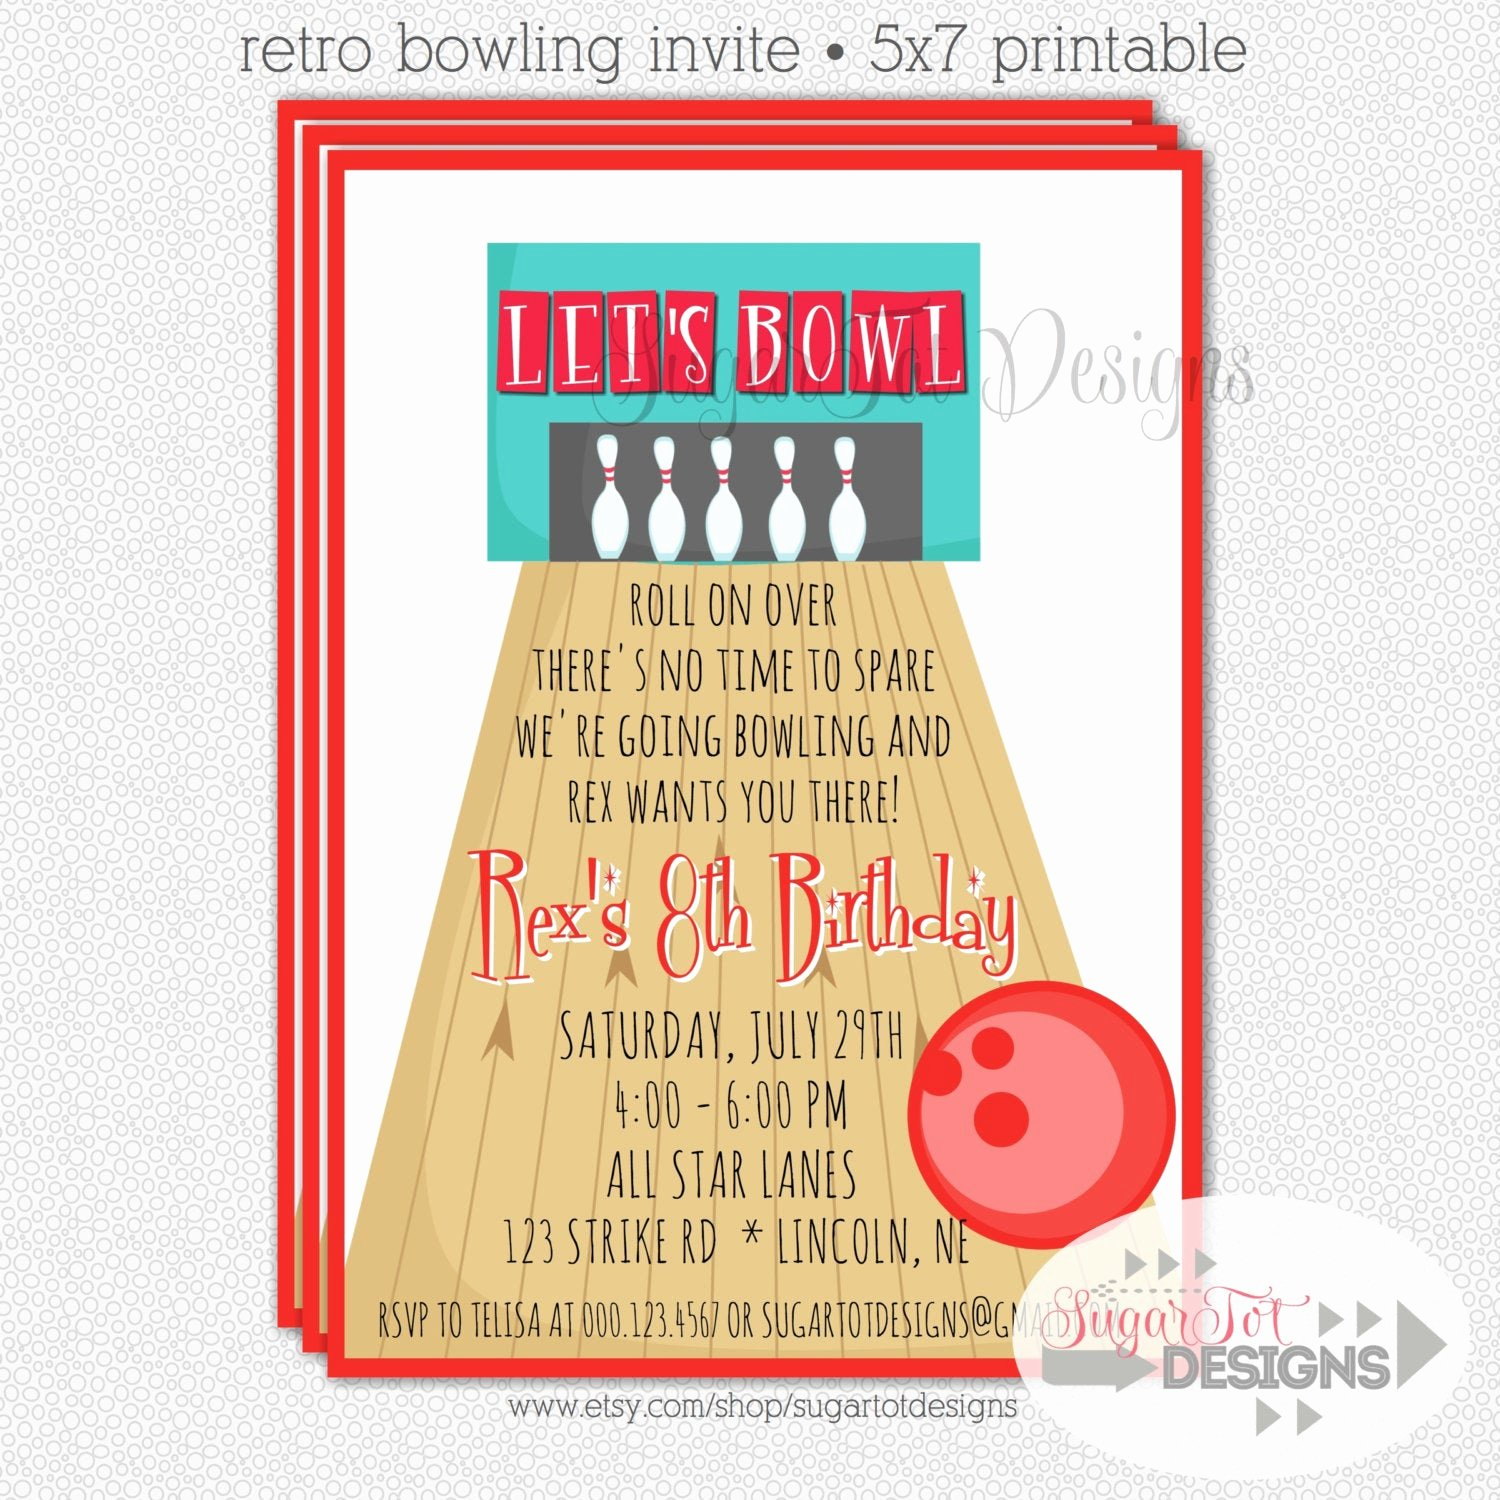 Free Bowling Party Invitations Awesome Bowling Party Invitation Retro Bowling Party by Sugartotdesigns